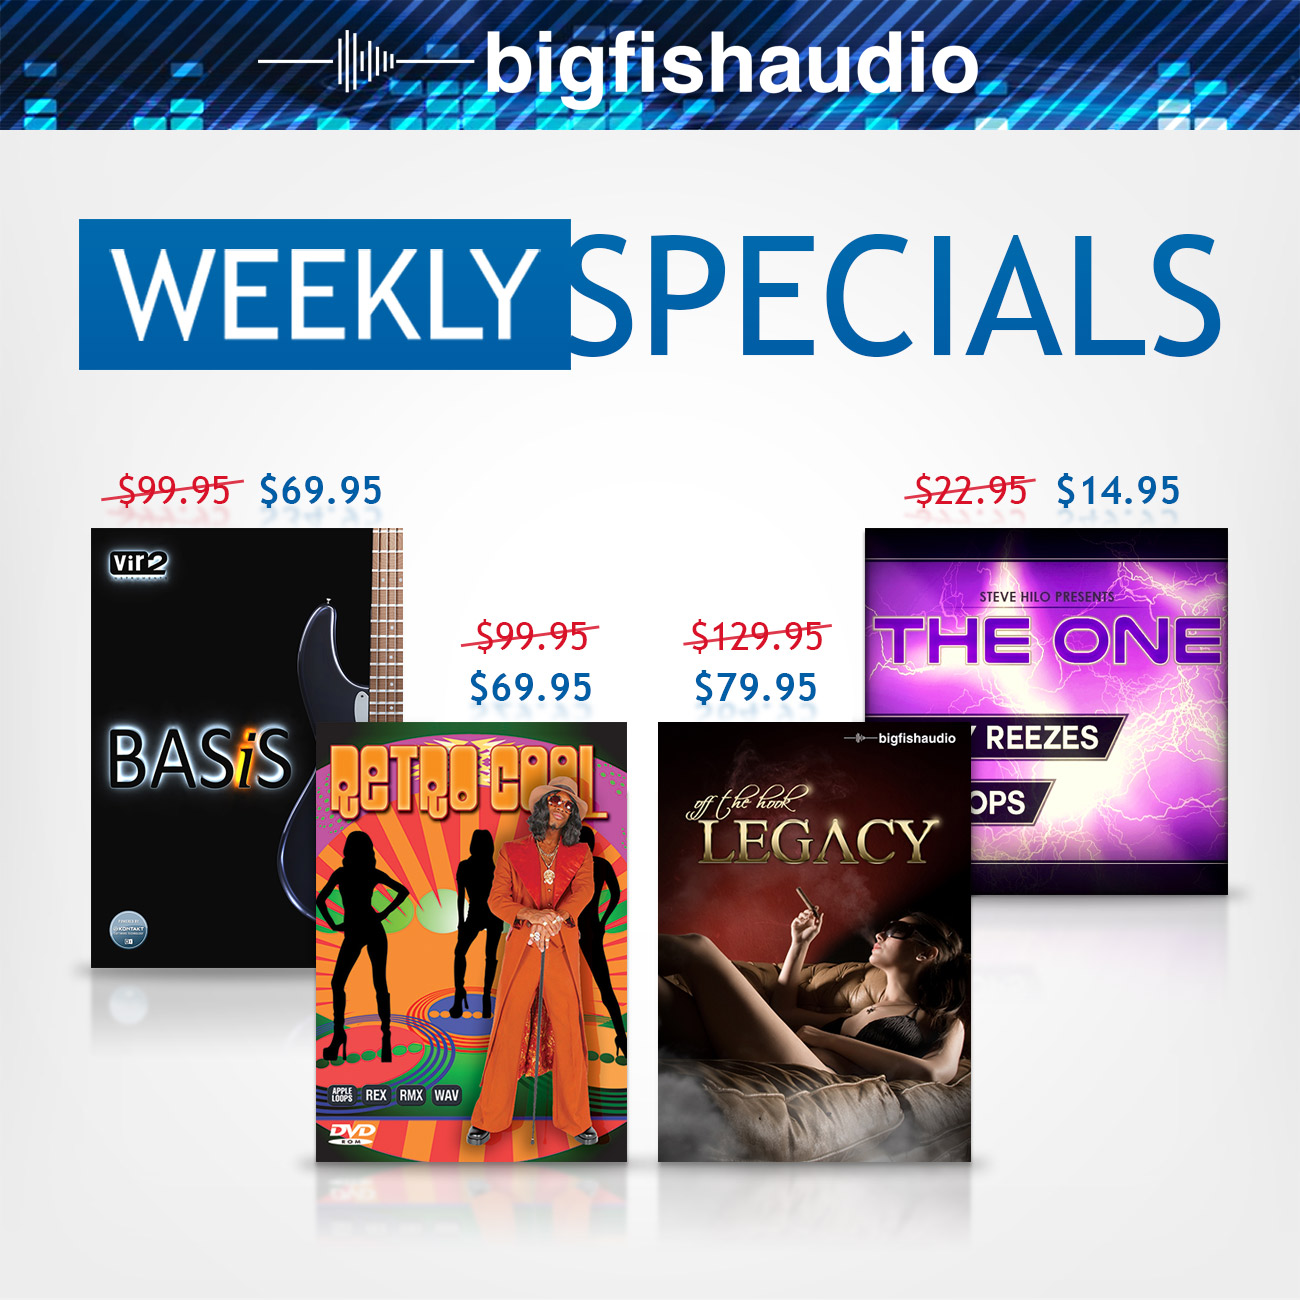 Big Fish Audio Weekly Specials Nov 30 2017